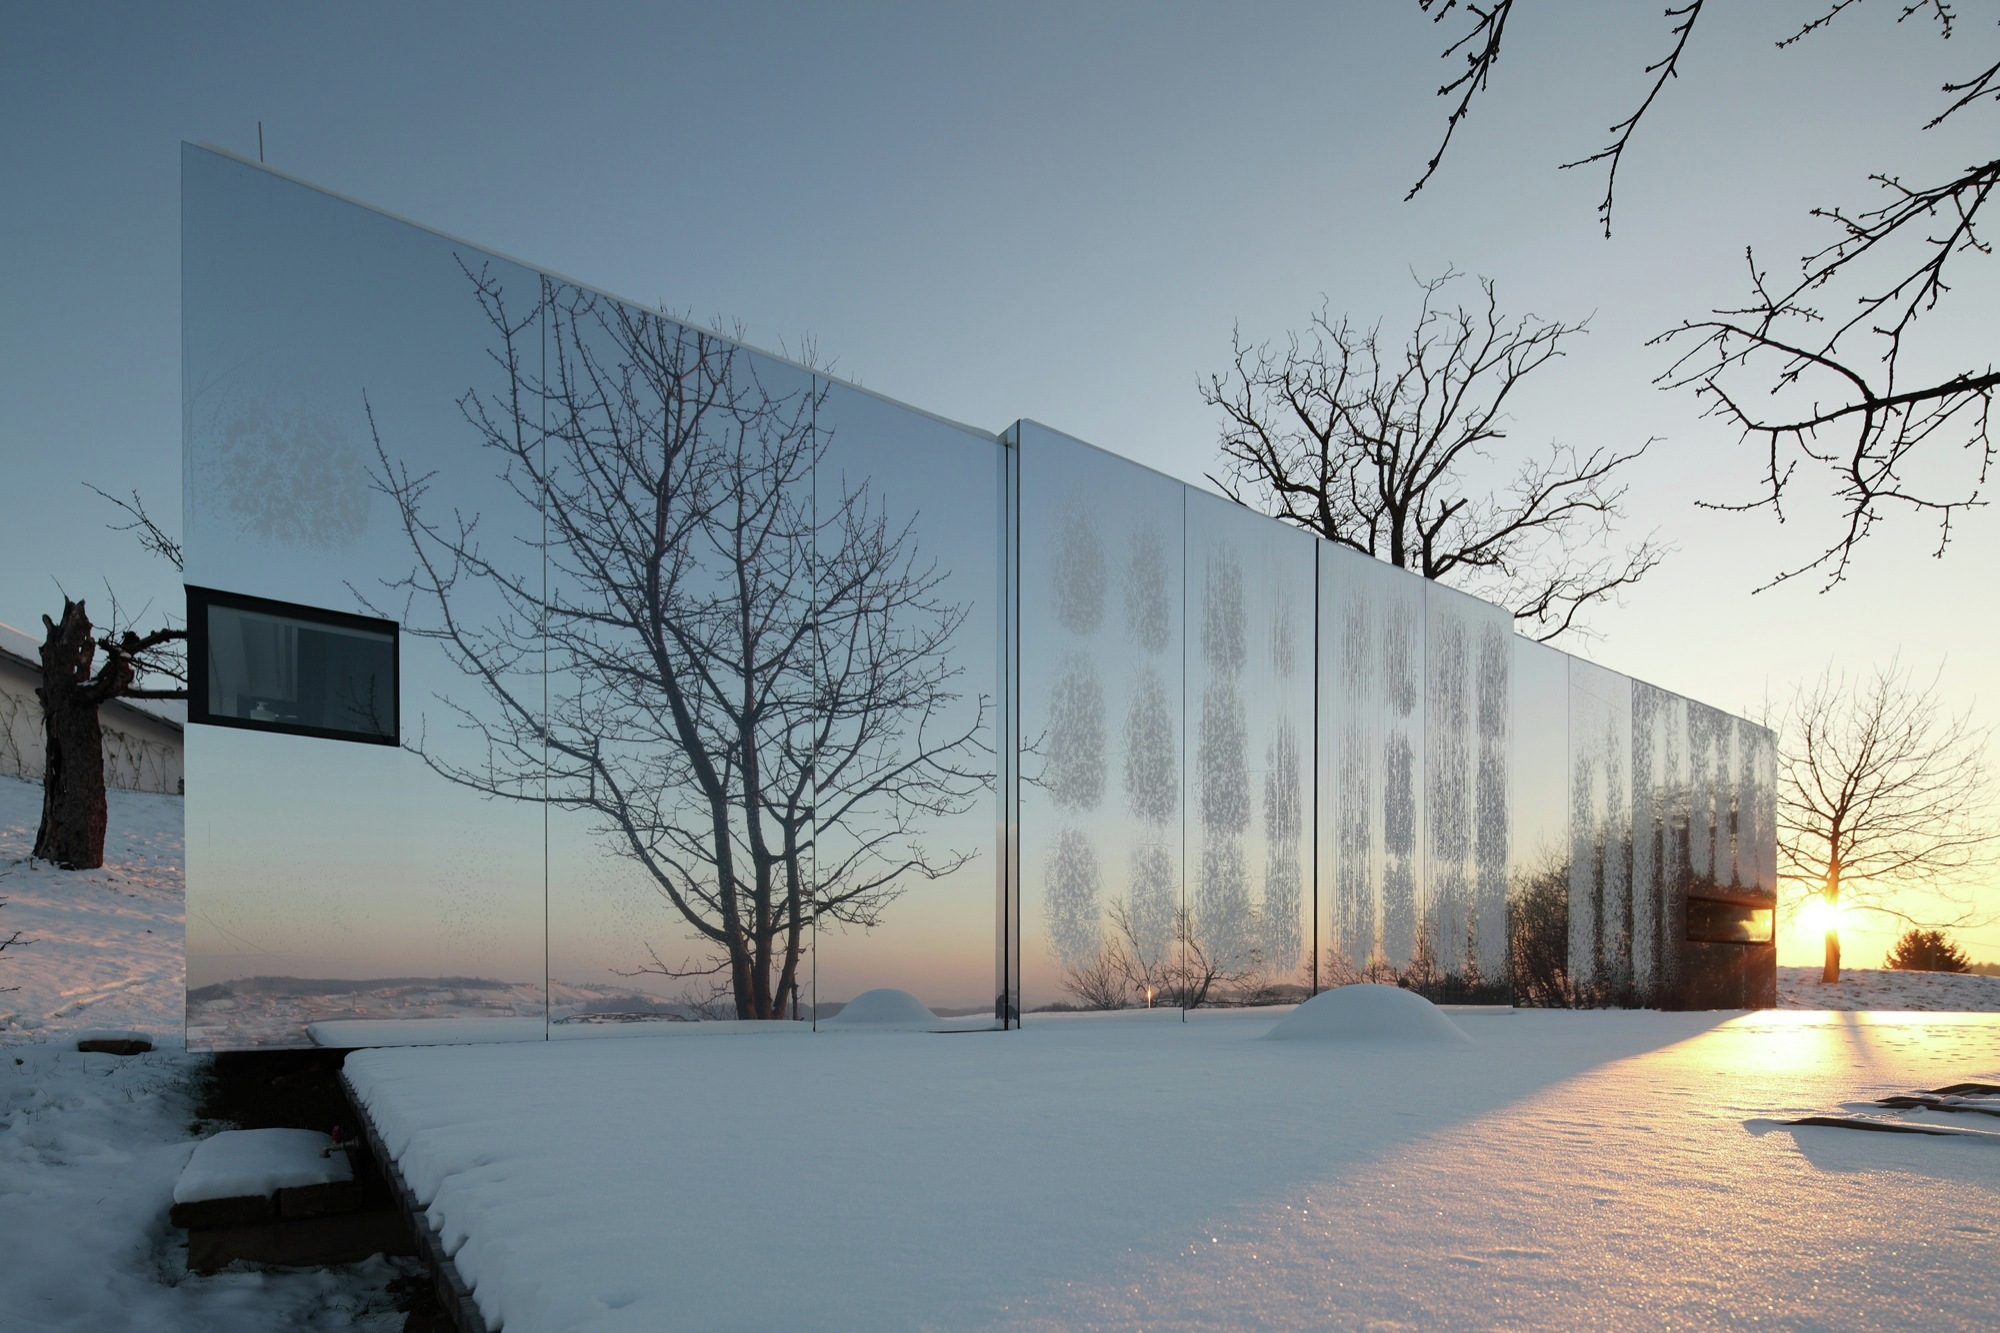 A modular home made from reflective materials and mirrors that is reflecting the surrounding landscape, which is trees in the winter.